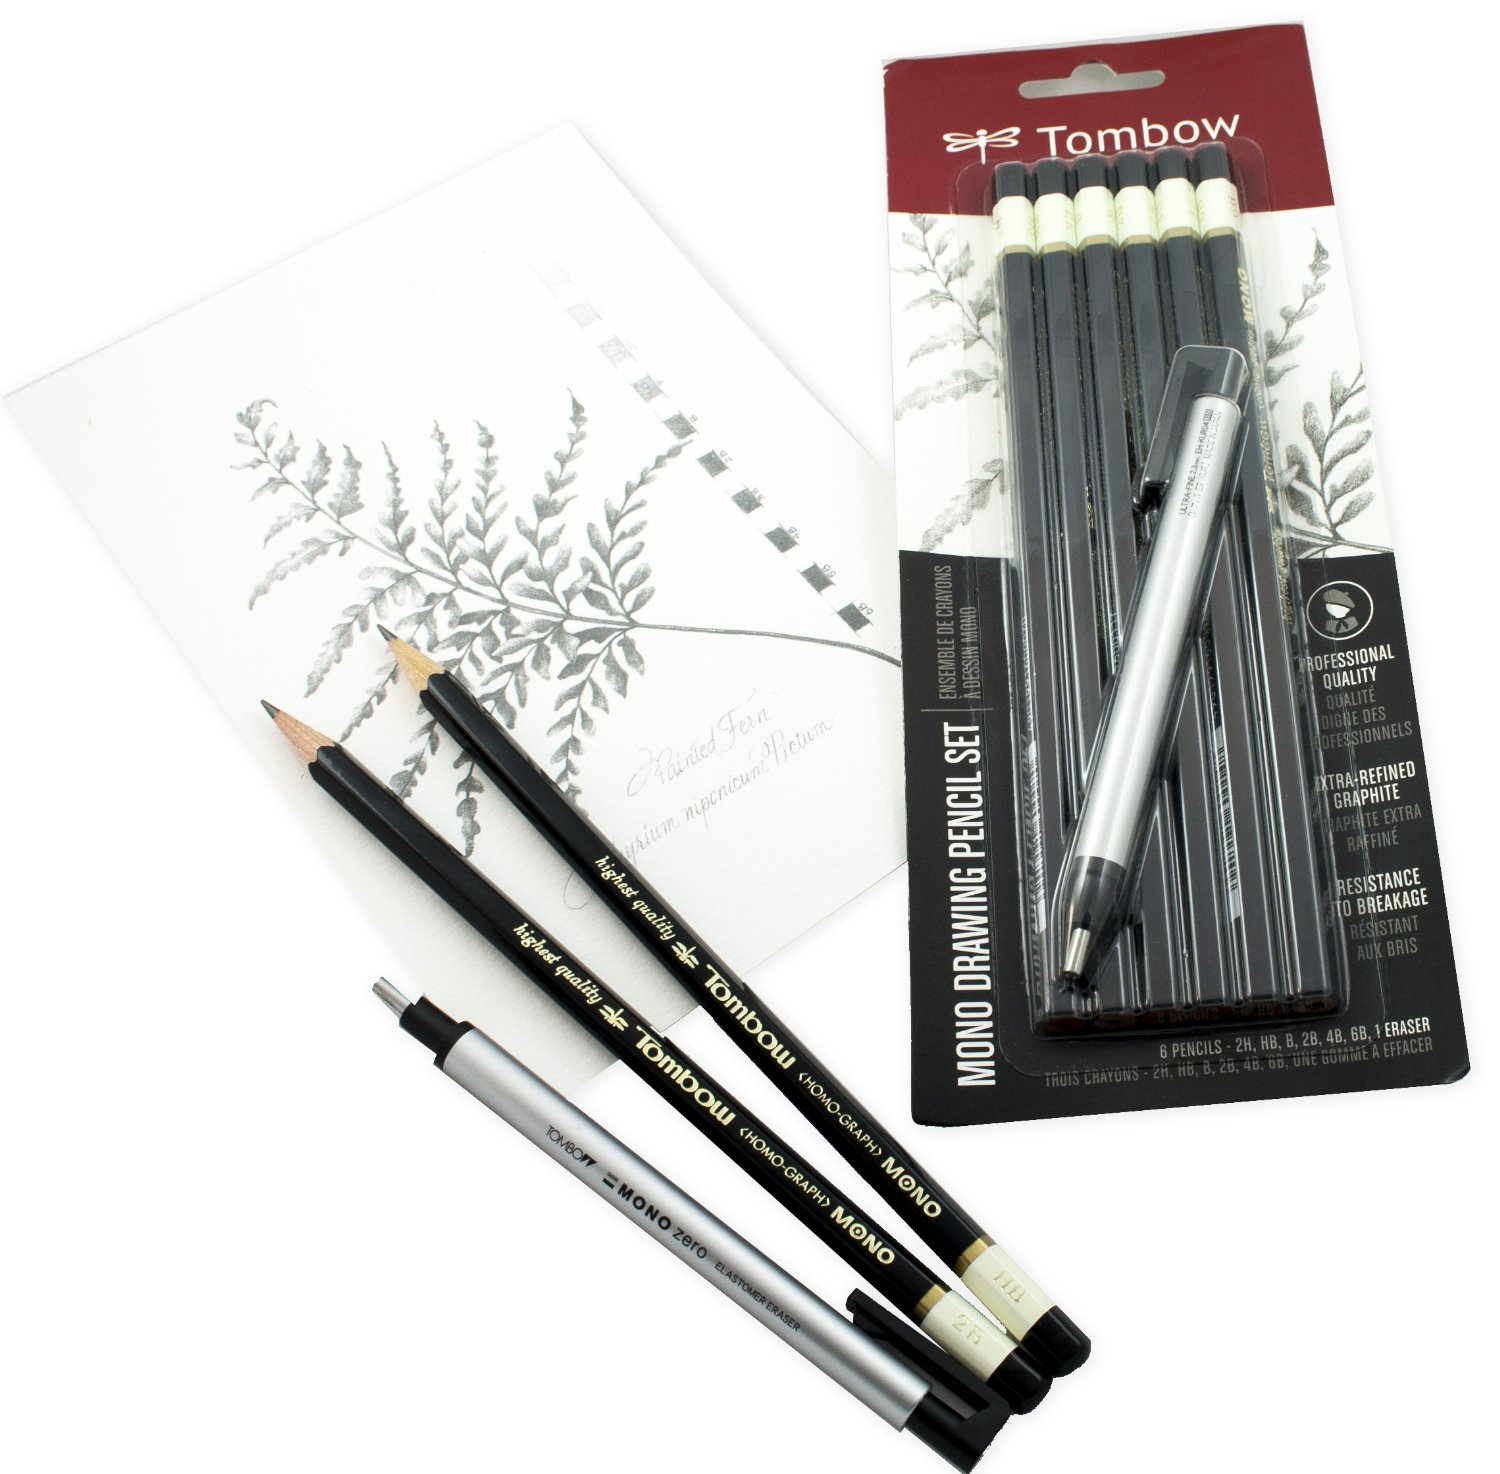 Tombow pencil 6pak for artists